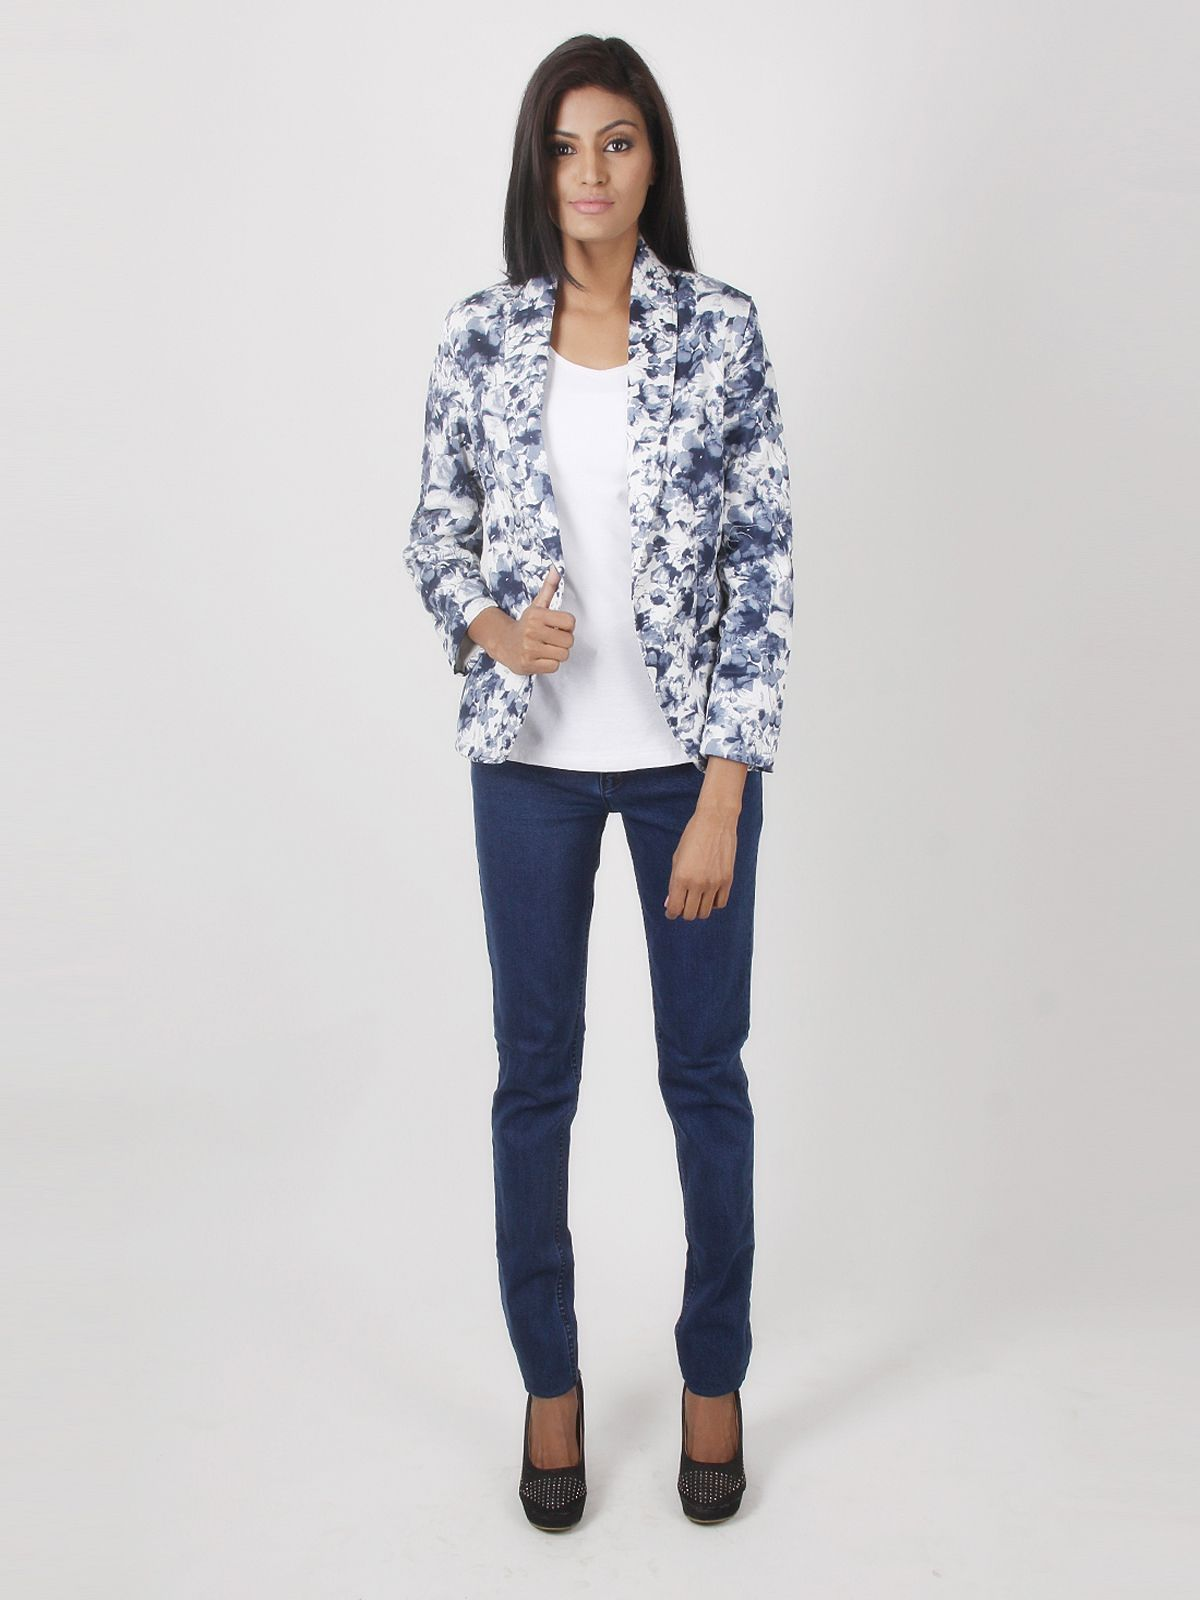 casual jackets for search pantsuit